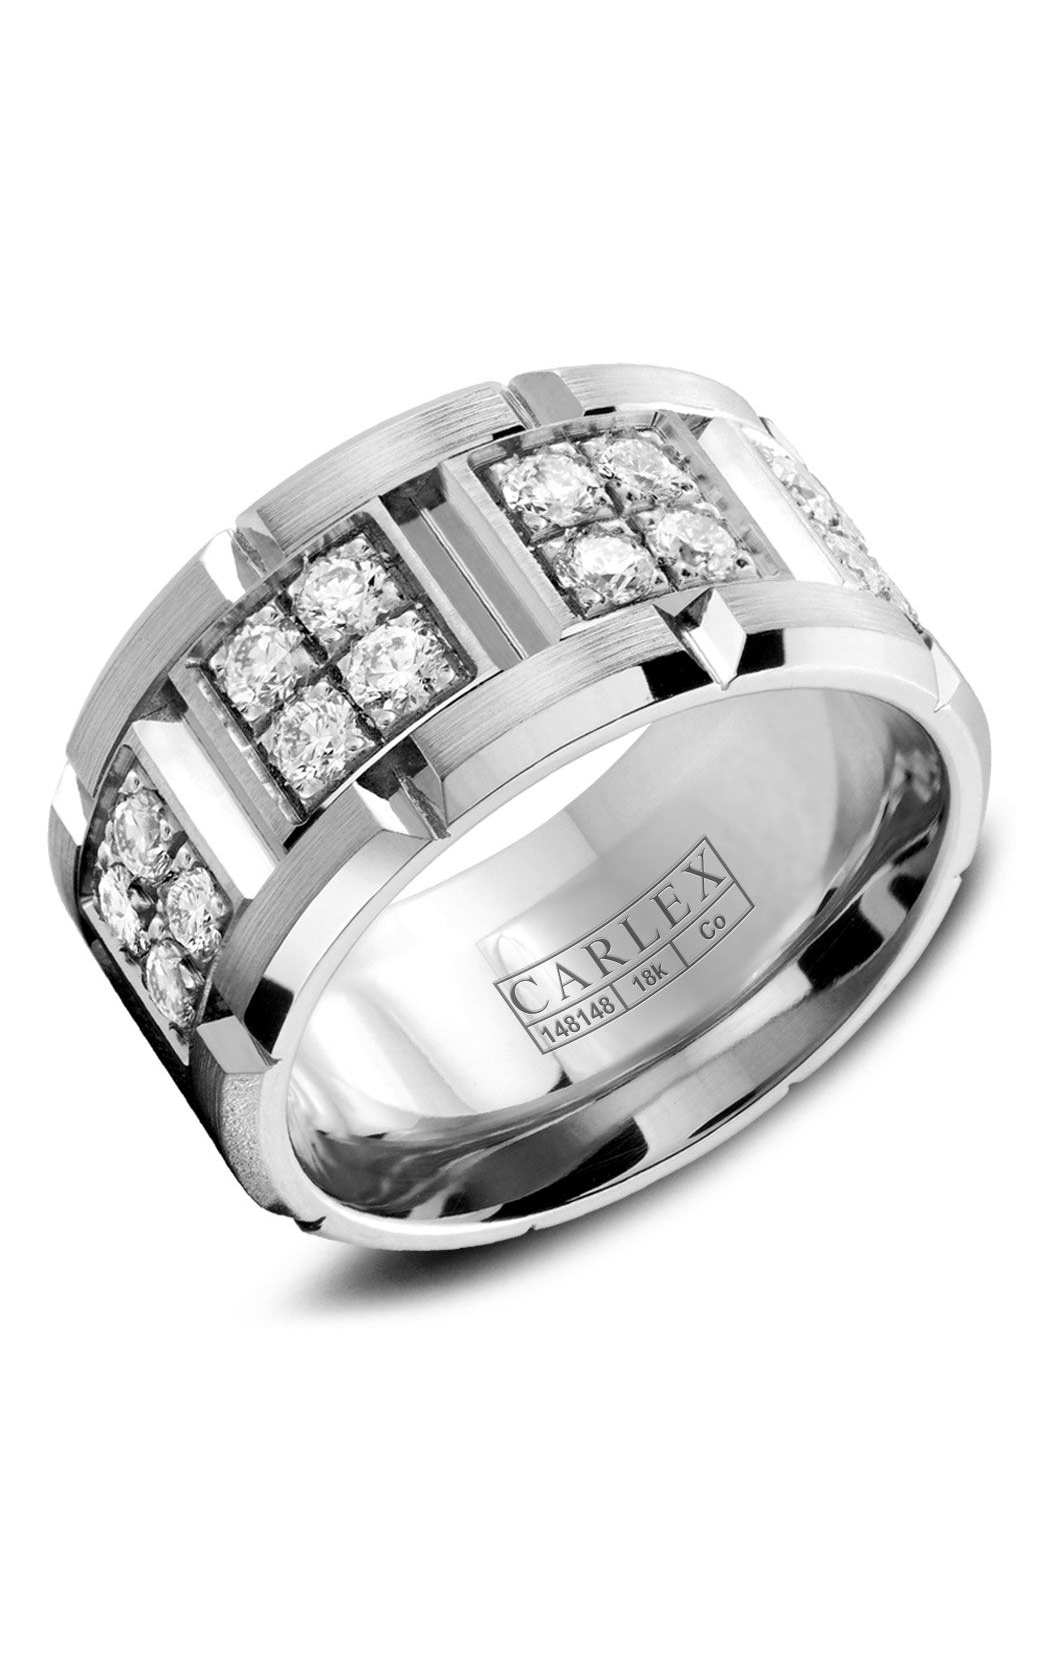 Carlex Sport Men's Wedding Band WB-9591WC product image